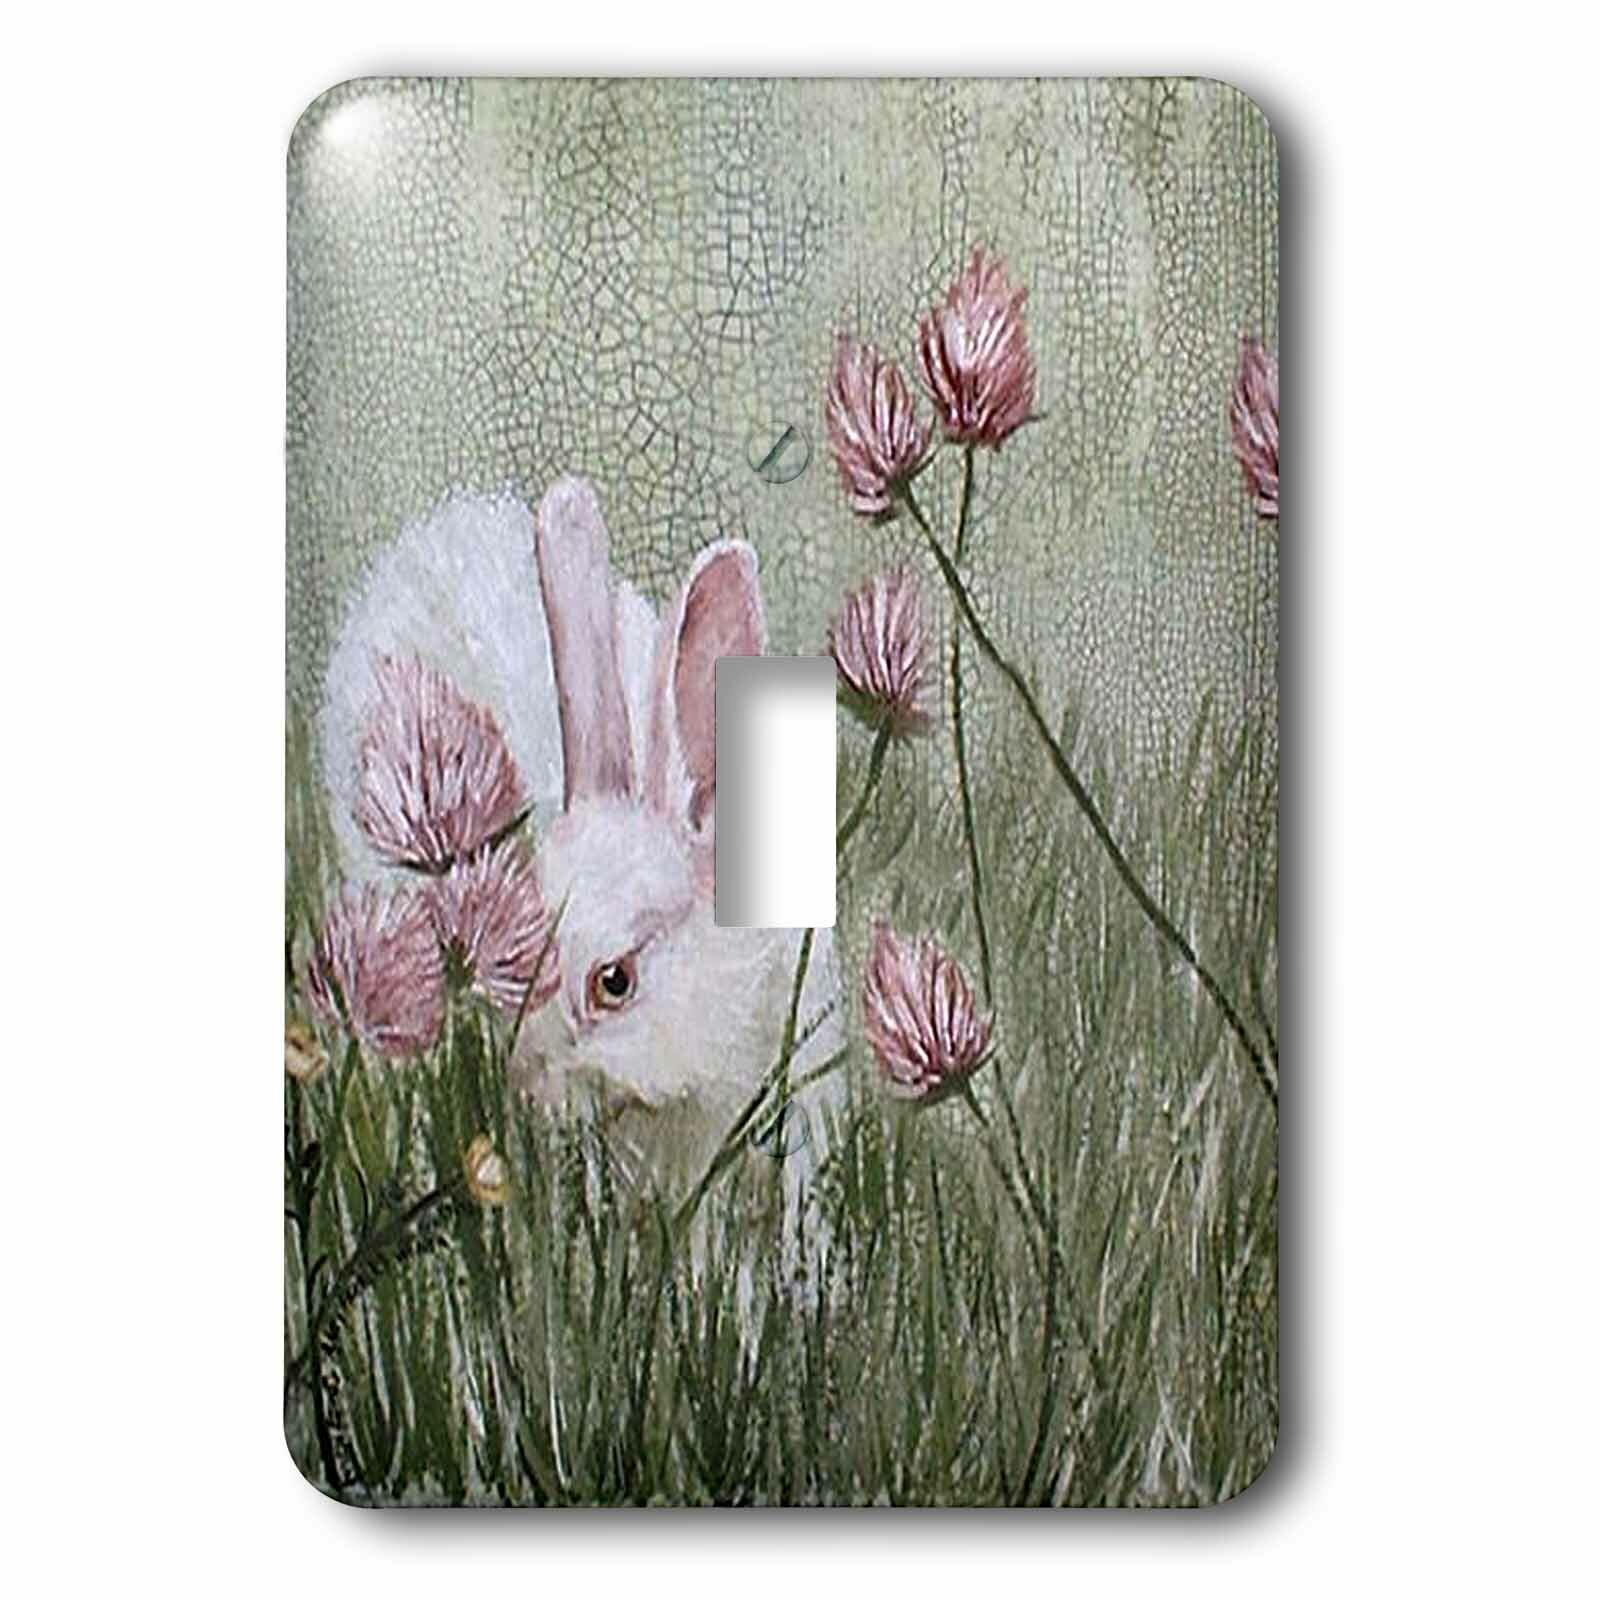 3drose Bunny Rabbit In Grass 1 Gang Toggle Light Switch Wall Plate Wayfair